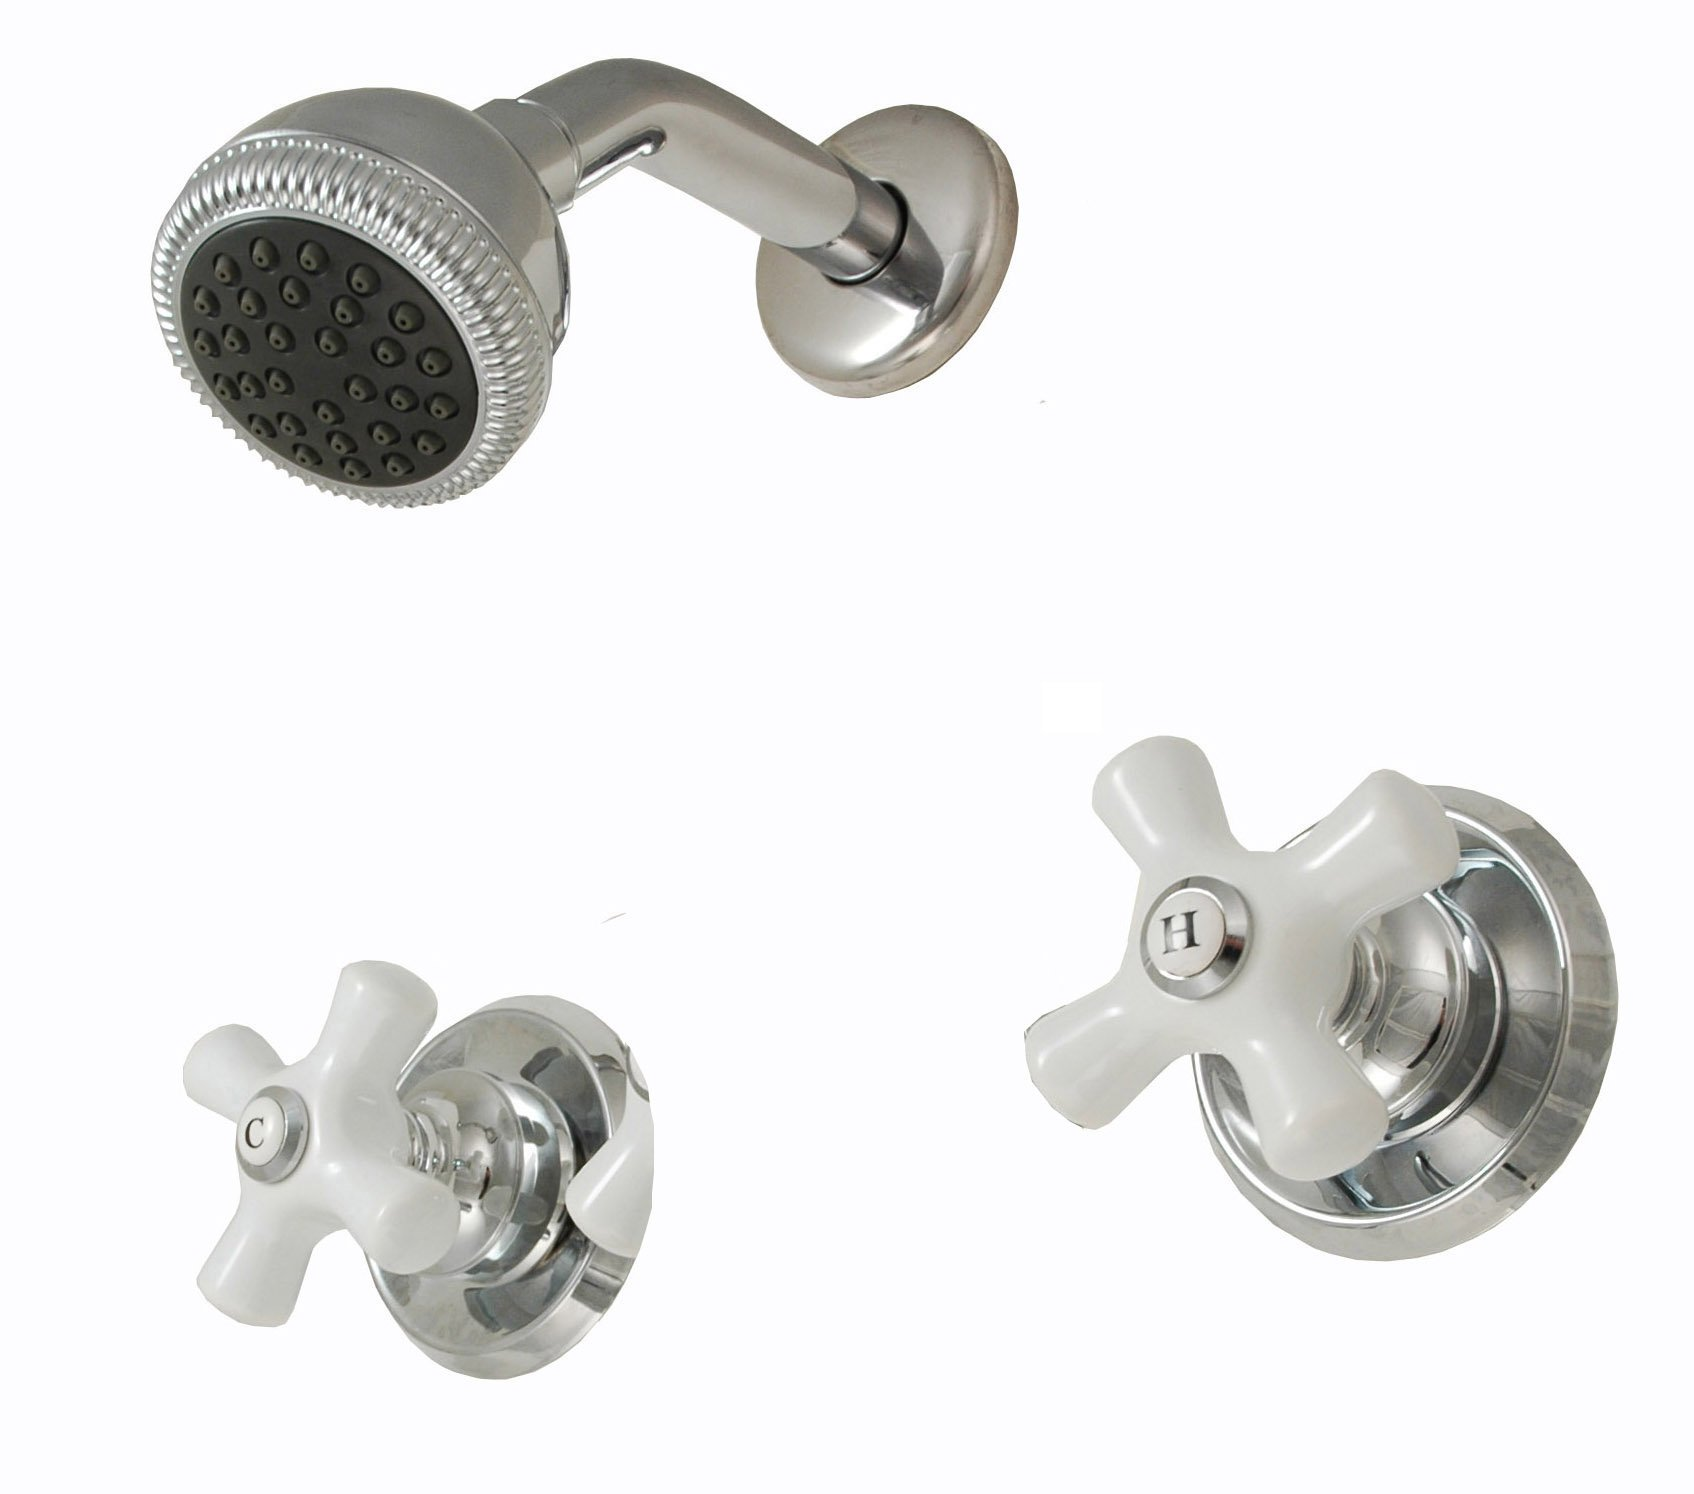 Two-handle Shower Faucet, Chrome Finish, Porcelain Handle, Compression Stems - By Plumb USA